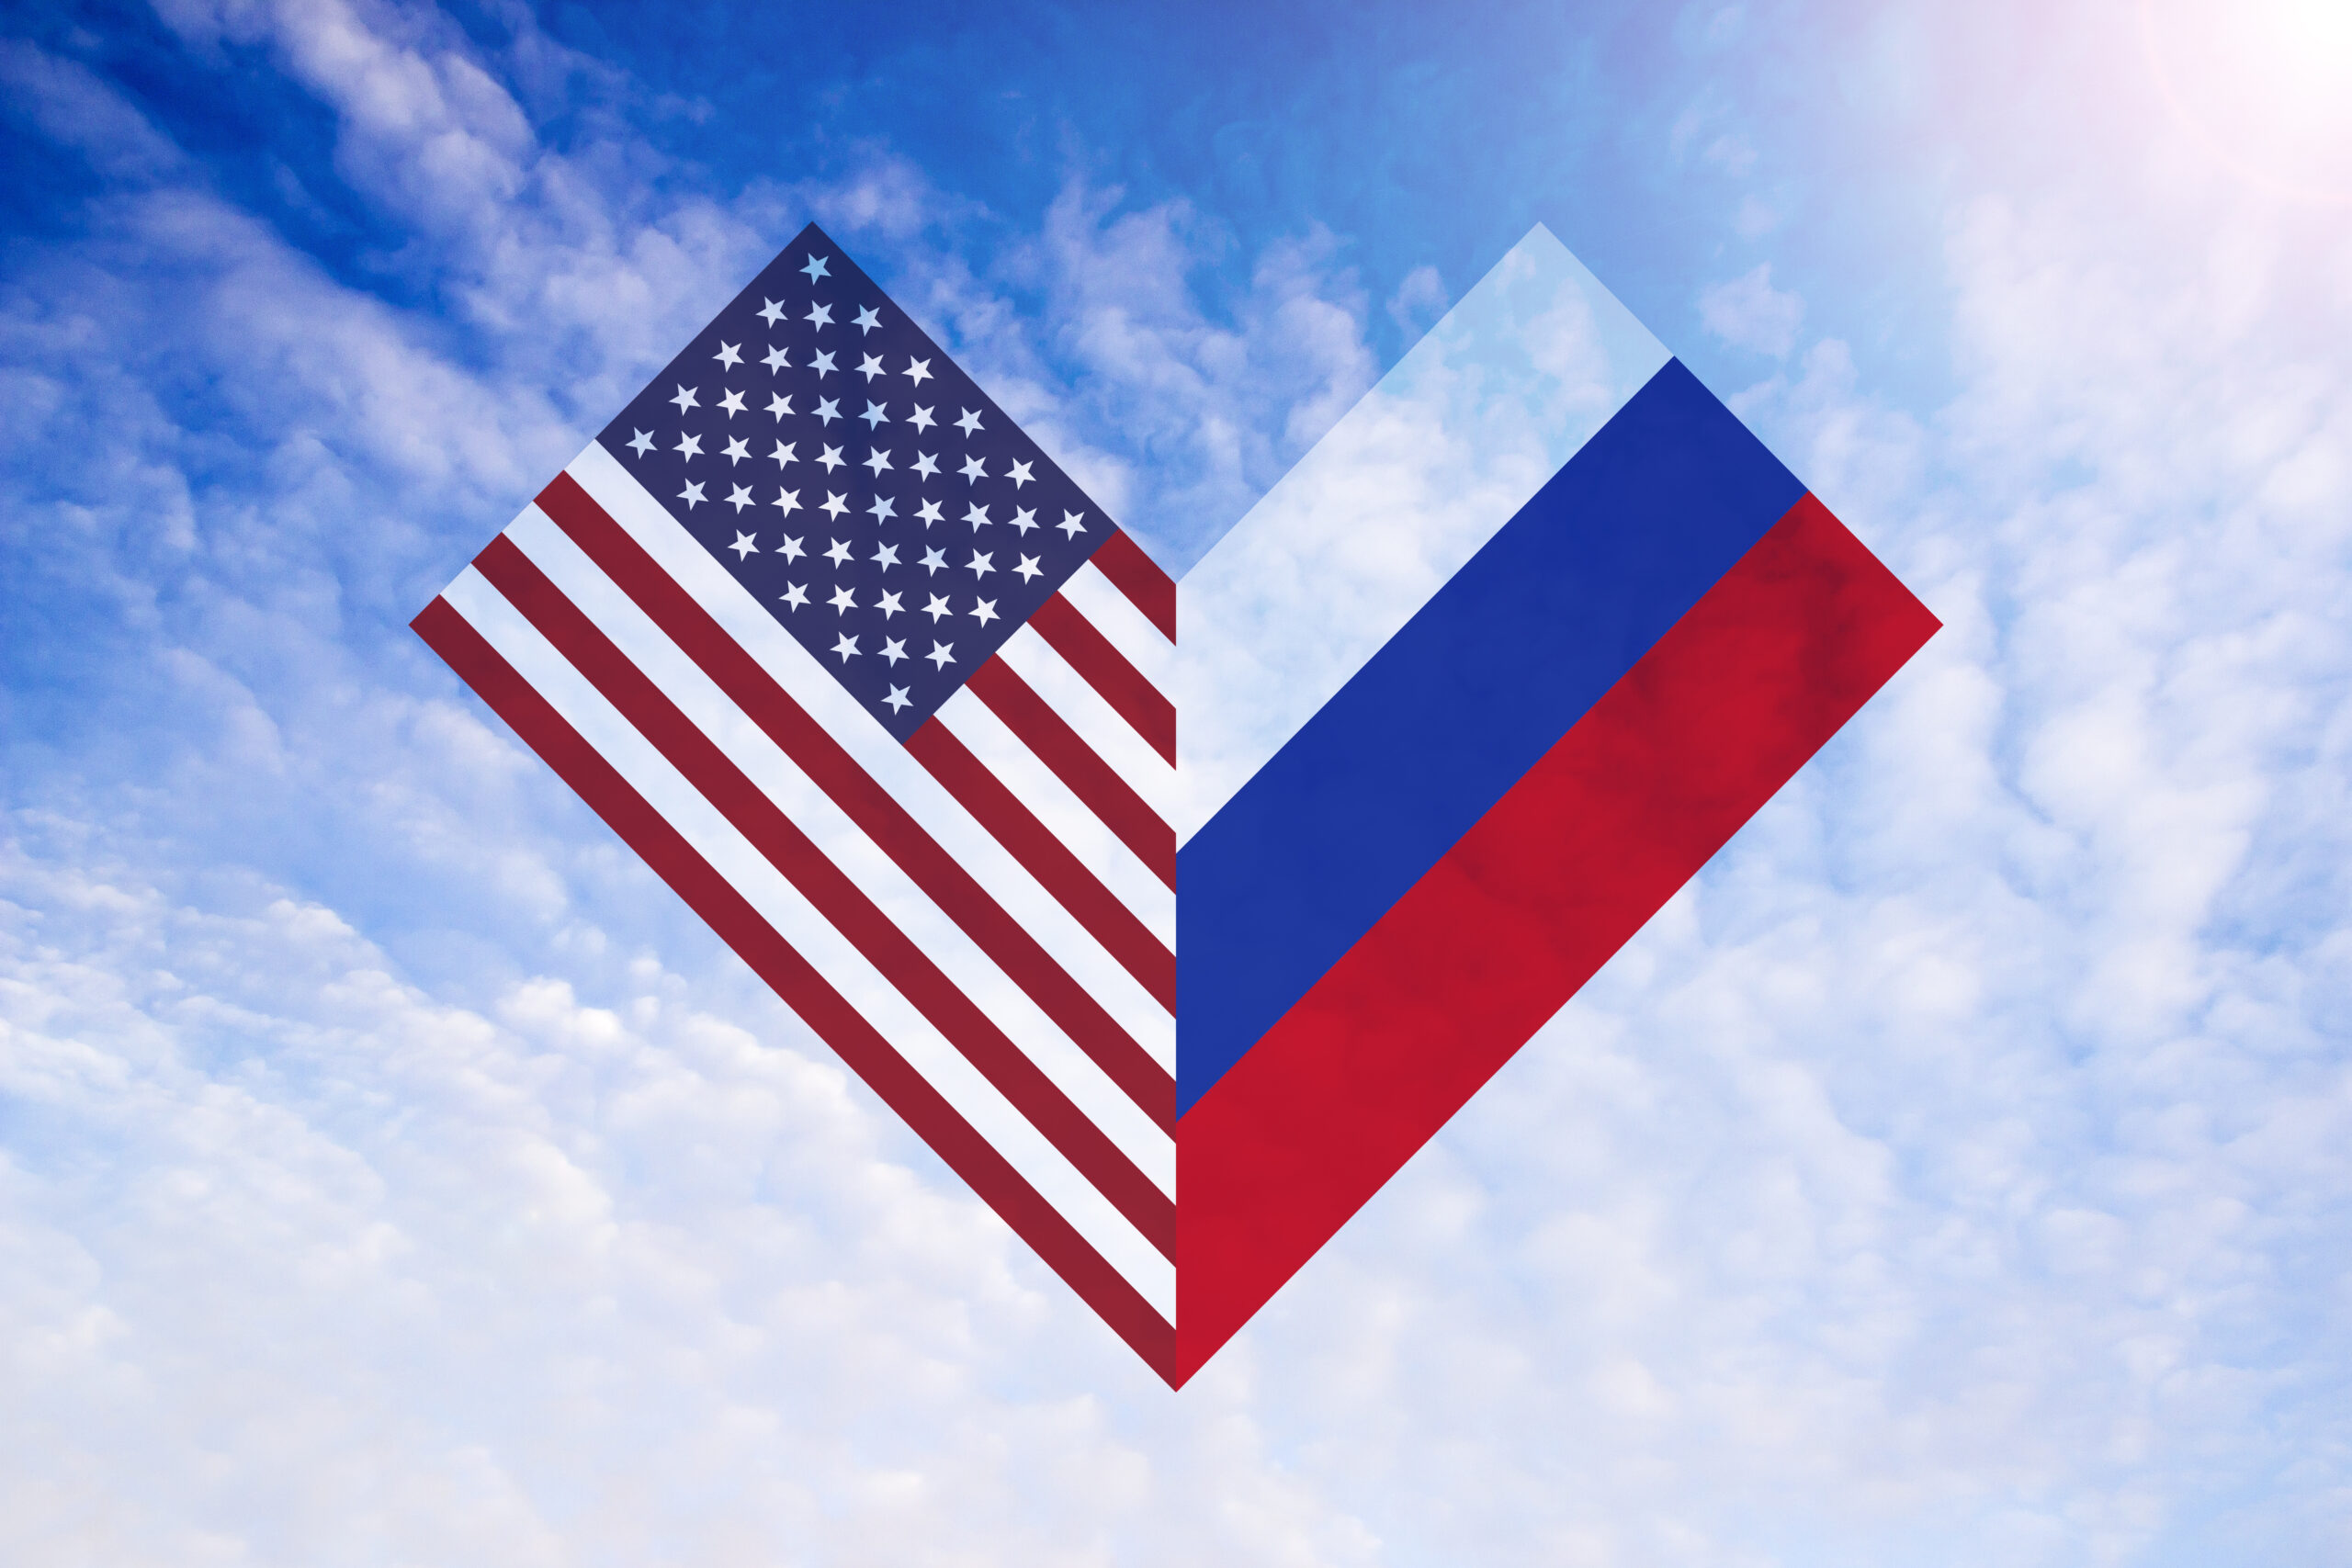 Marlene Laruelle – Russian and American Far Right Connections: Confluence, Not Influence